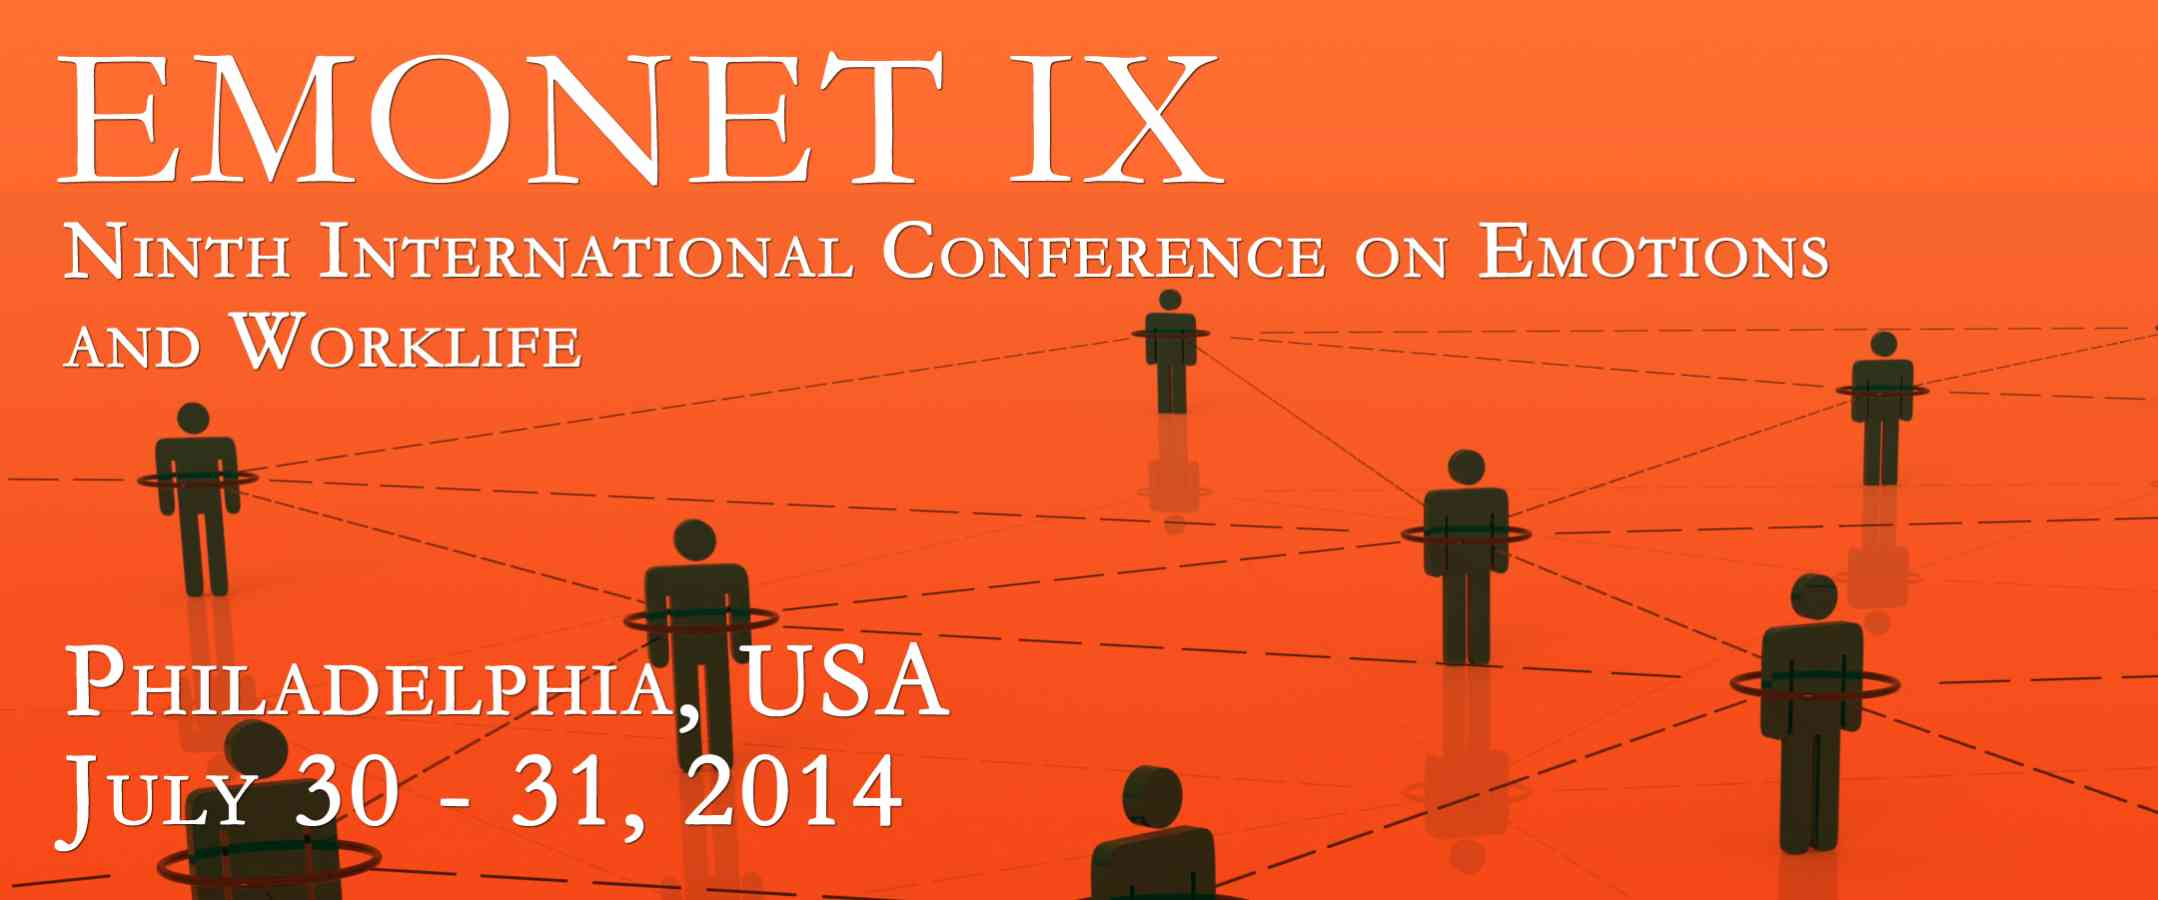 Emonet IX - International Conference on Emotions and worklife